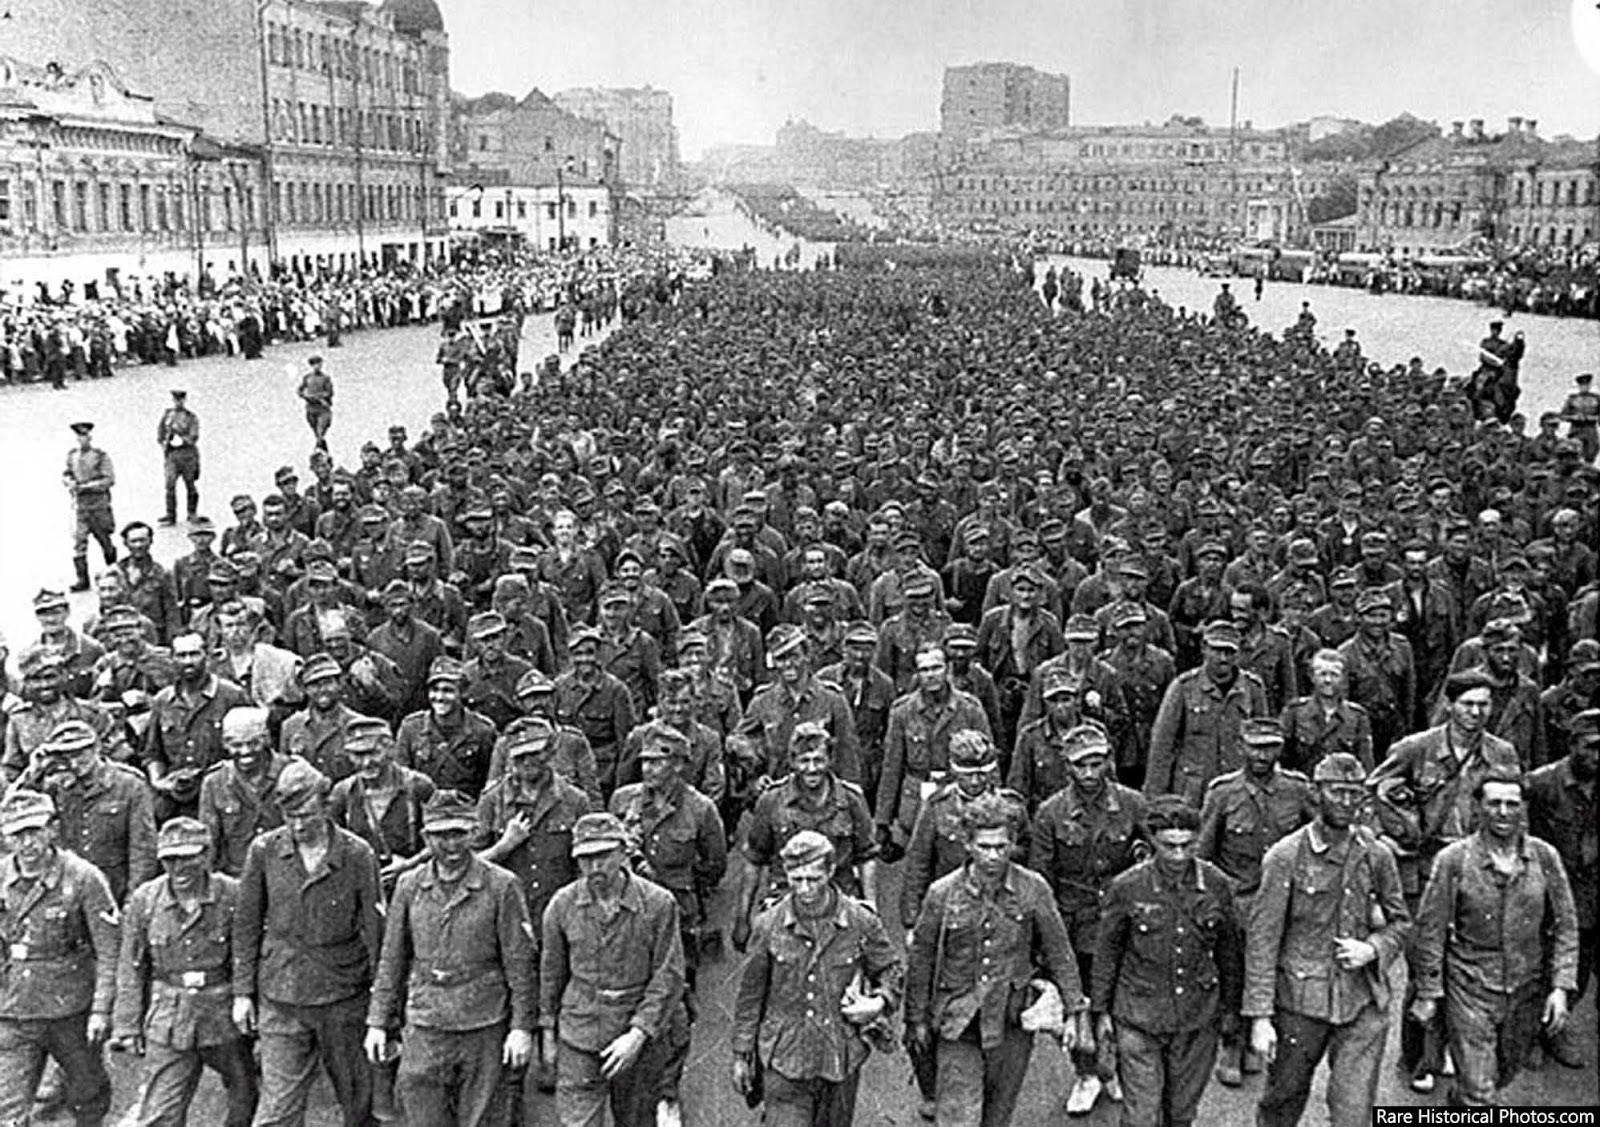 Parade of 57,000 German prisoners of war in the streets of Moscow. Under escort 1944.